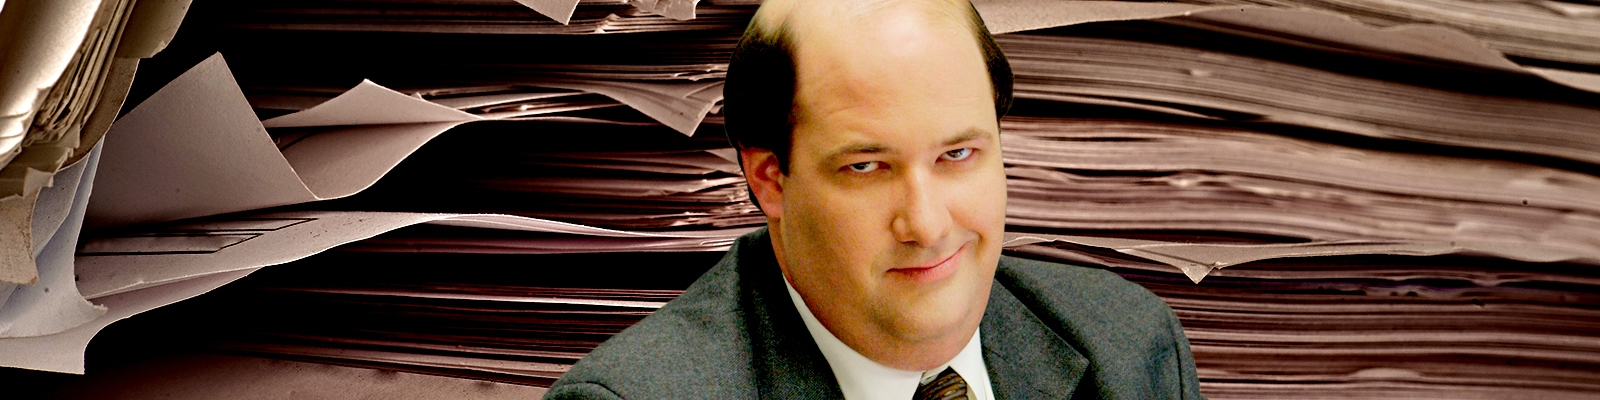 Brian Baumgartner Is Trying To Figure Out Why Everyone Watches 'The Office' So Much